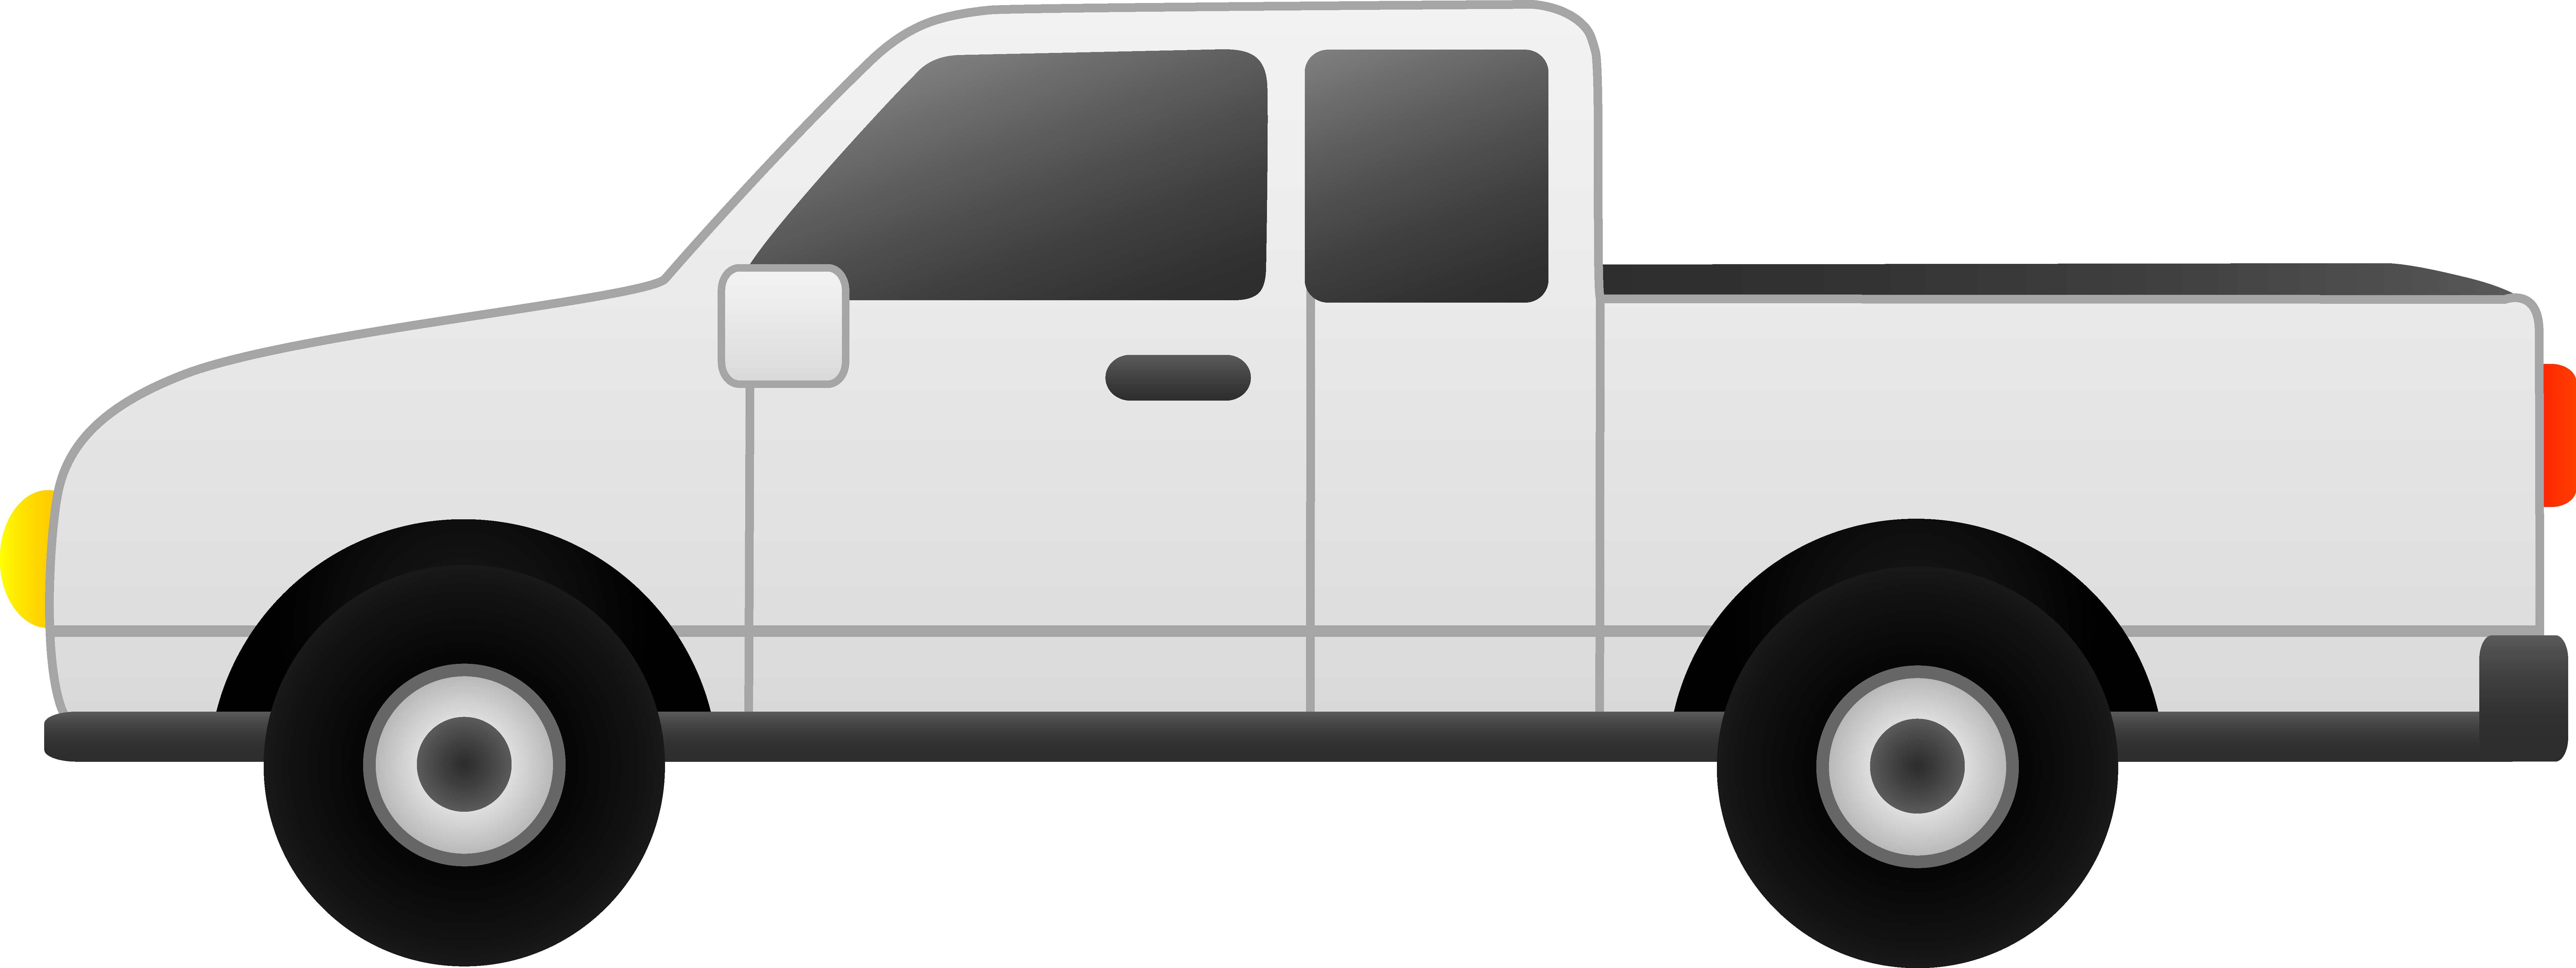 Lifted Black Truck >> Pickup Truck Clipart | Clipart Panda - Free Clipart Images